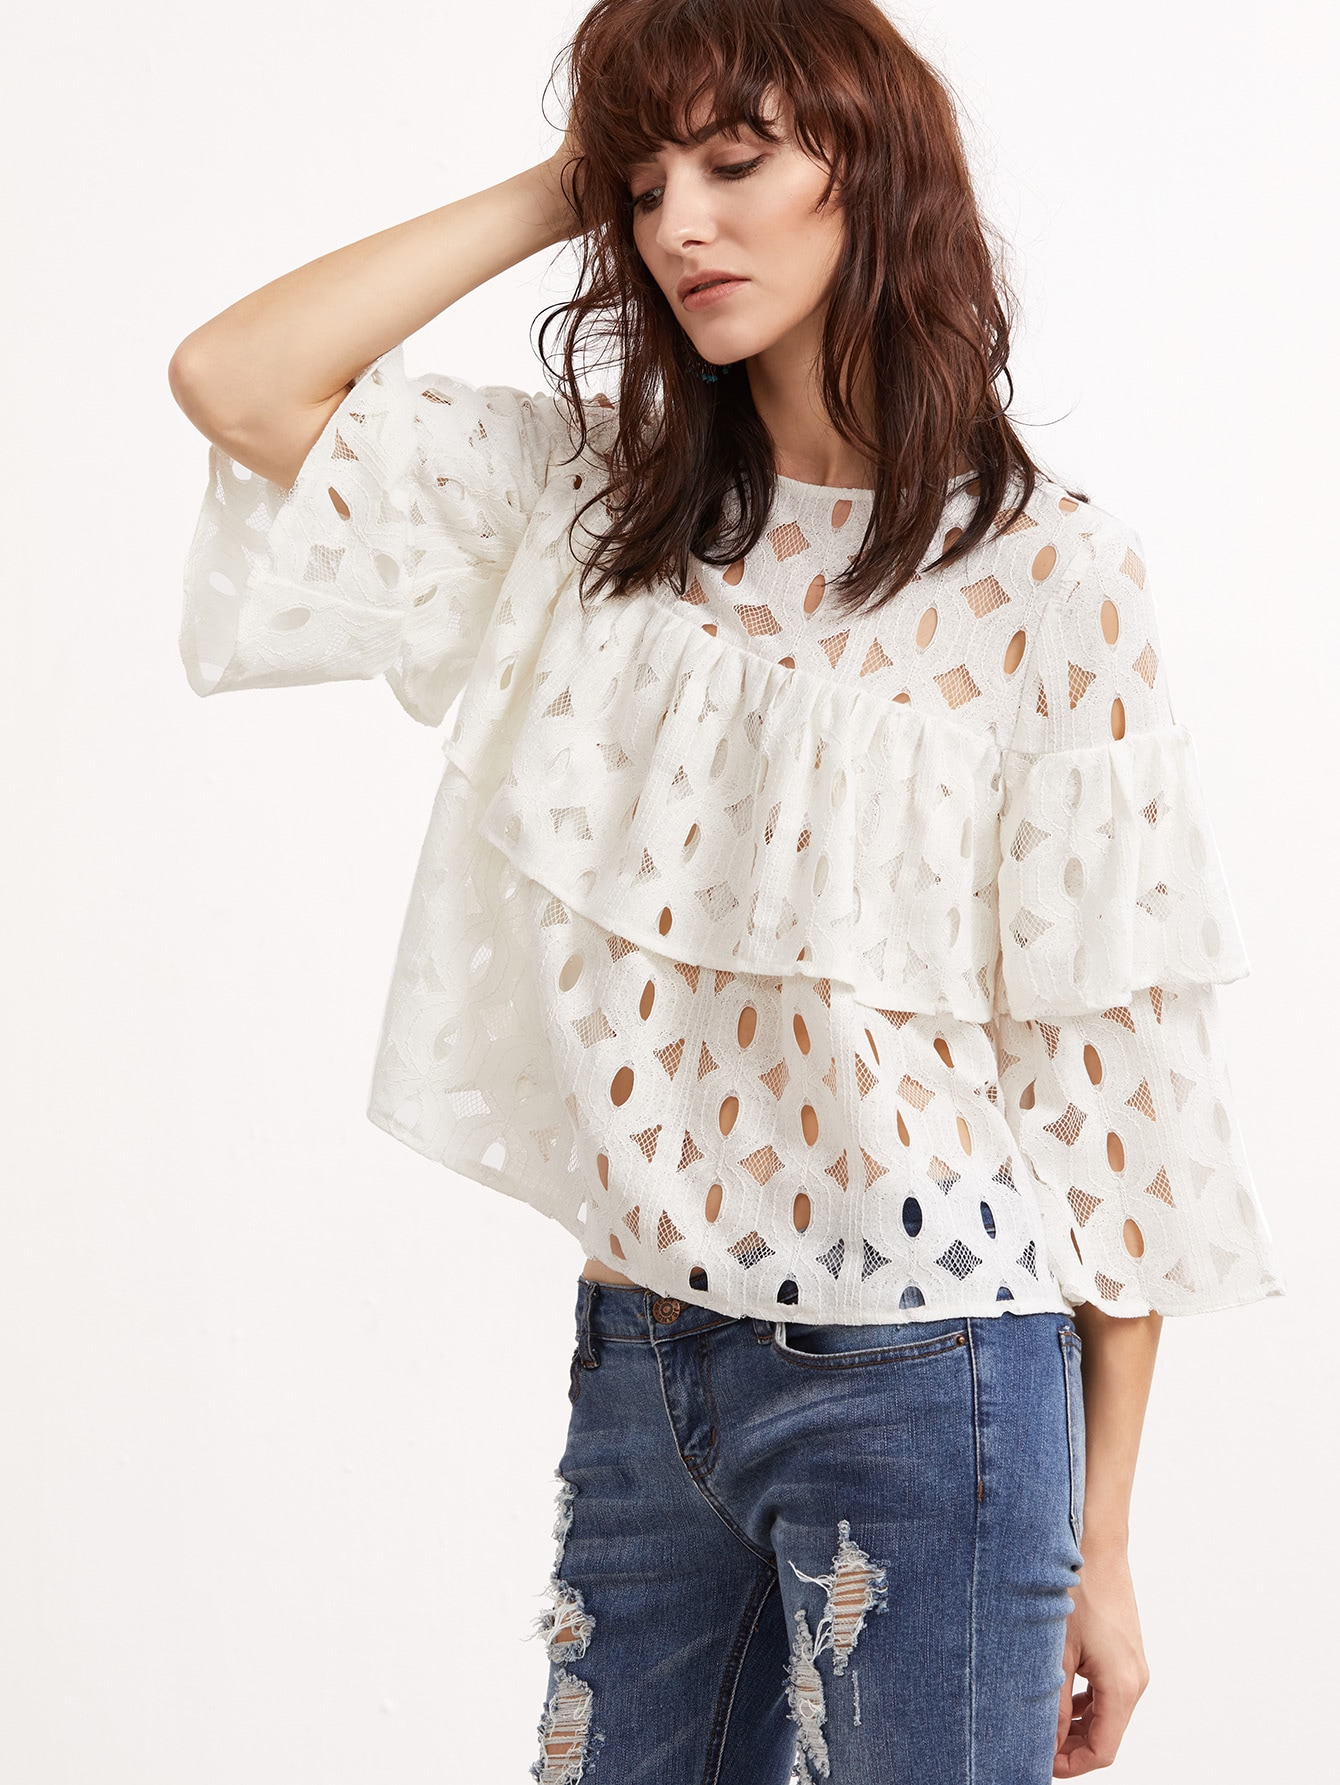 White Hollow Out 3/4 Sleeve Layered Ruffle Lace Top